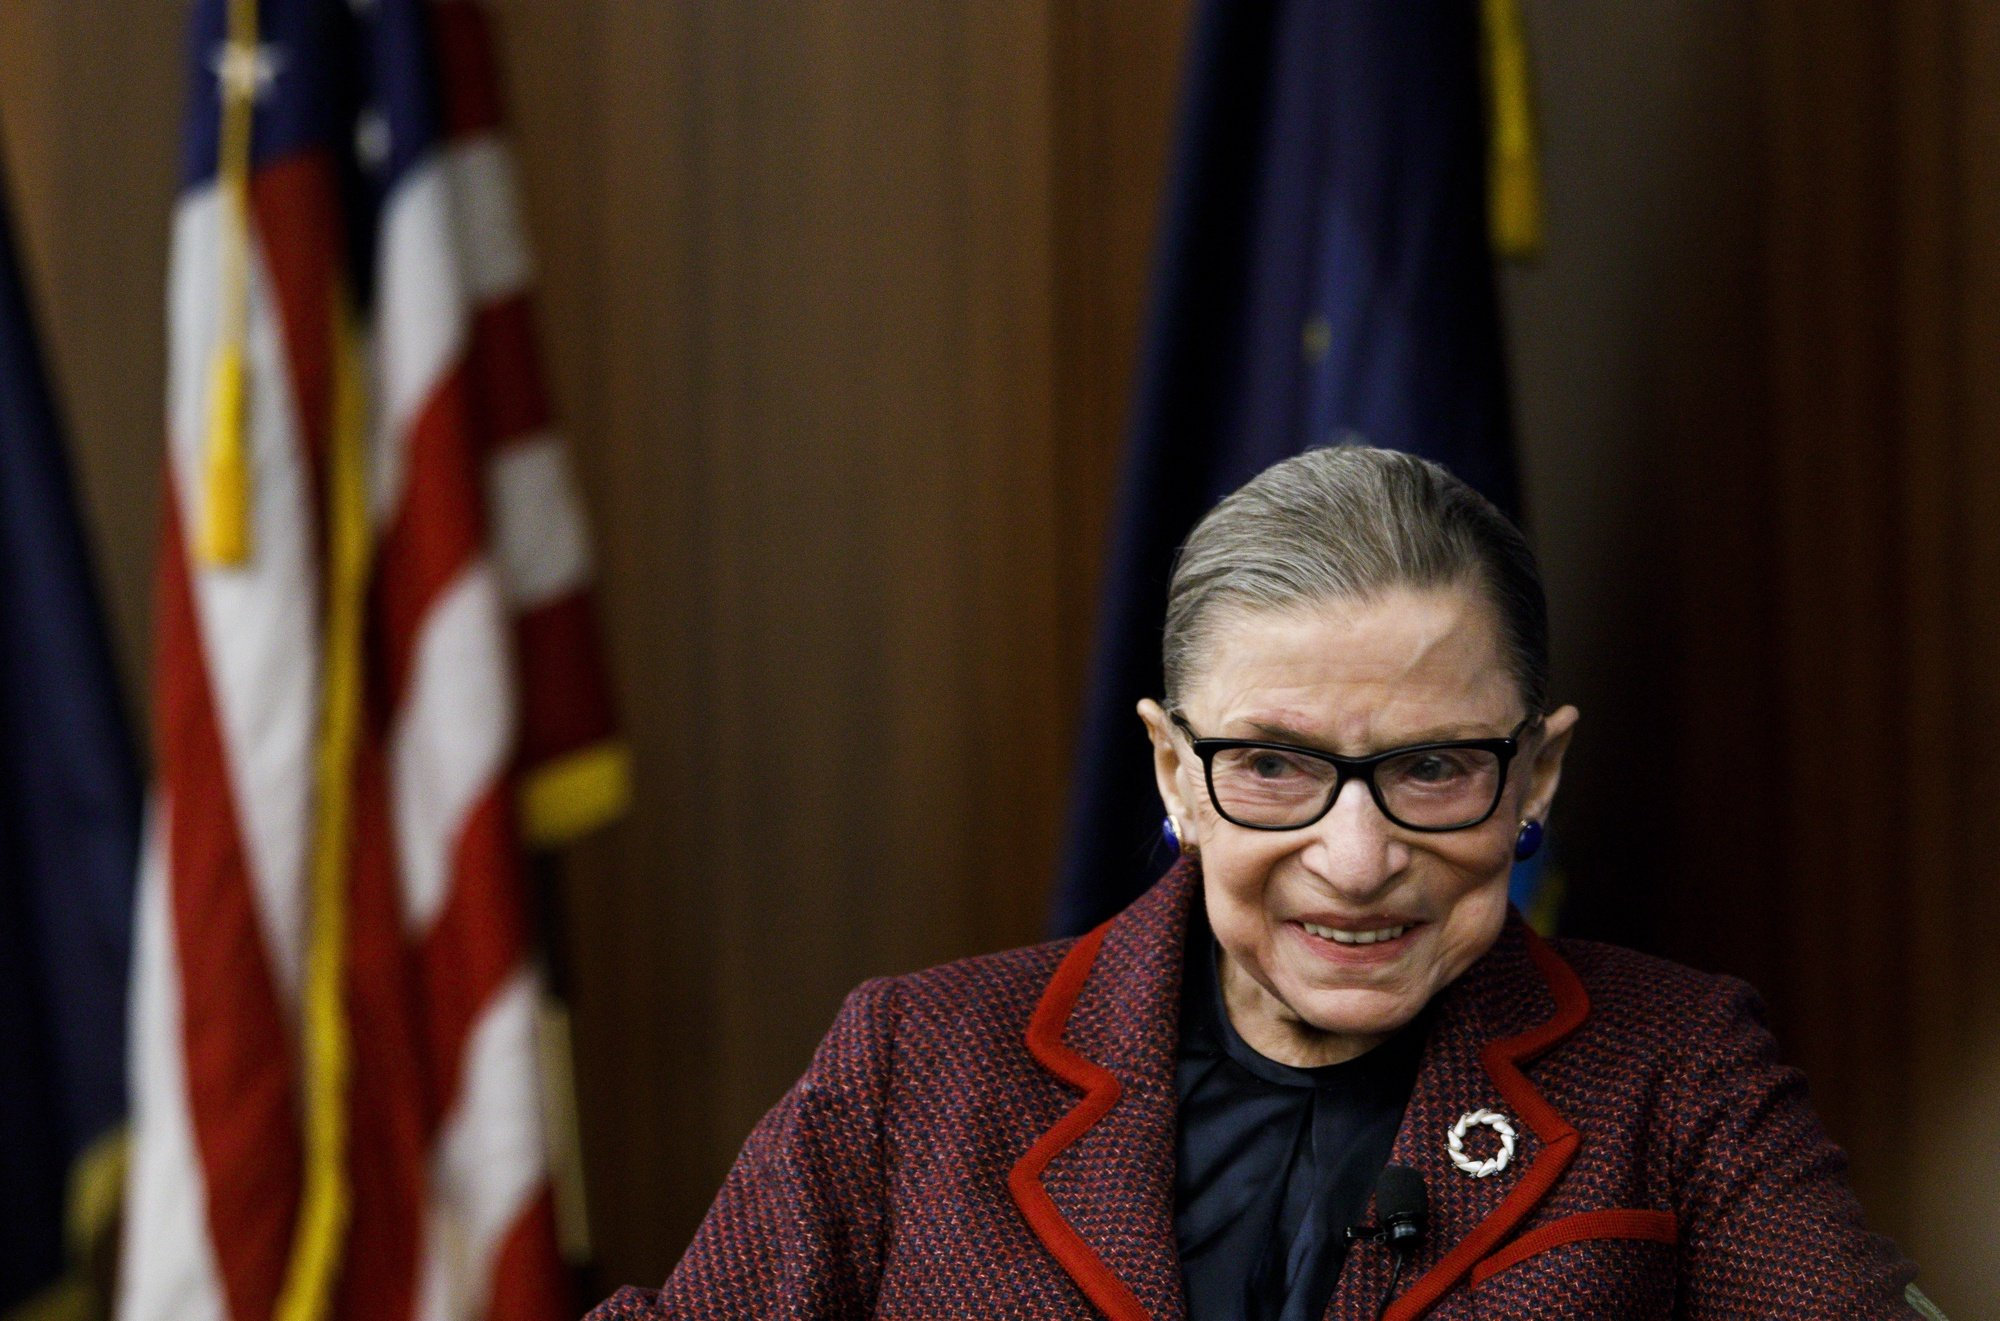 epa08679843 (FILE) - United States Supreme Court Justice Ruth Bader Ginsburg attends an event at New York Law School in New York, New York, USA, 06 February 2018. According to reports on 18 September 2020, United States Supreme Court Justice Ruth Bader Ginsburg has died at the age of 87. Justice Ginsburg, also known as RBG, took office on 10 August 1993 after an appointment by then US President Bill Clinton. She was the oldest of the nine serving supreme court judges at the time of her death.  EPA/JUSTIN LANE *** Local Caption *** 54091573